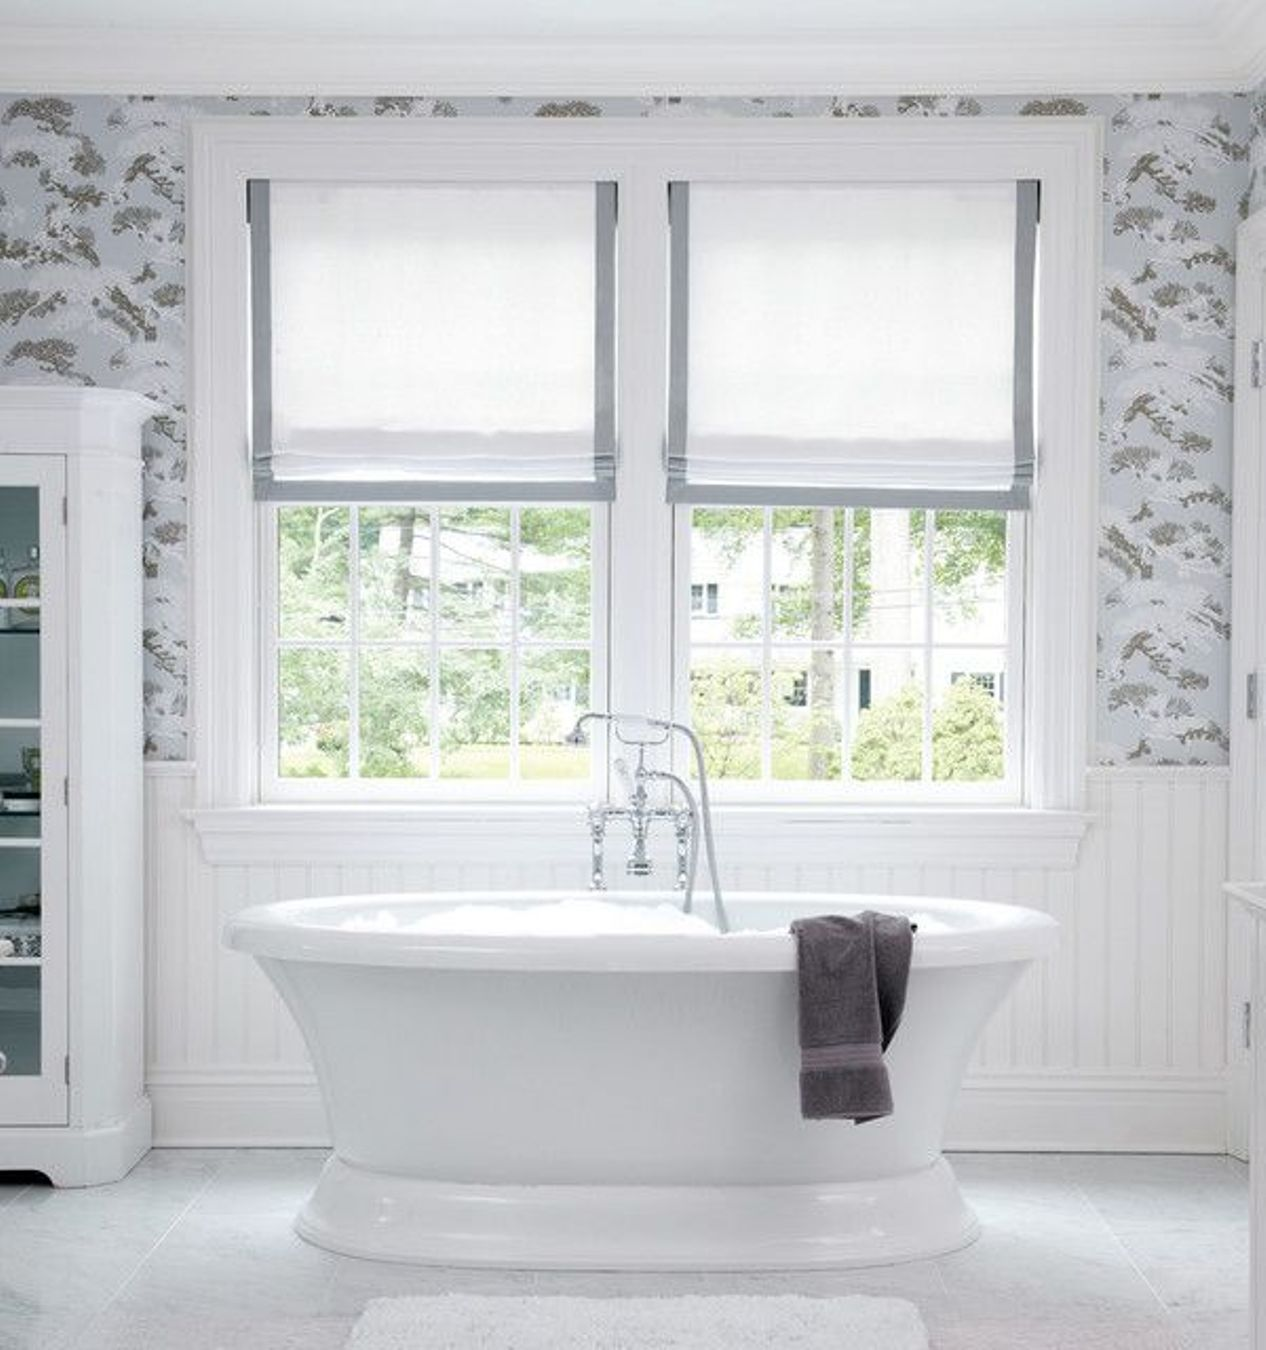 Small bathroom window curtains a creative mom Bathroom valances for windows